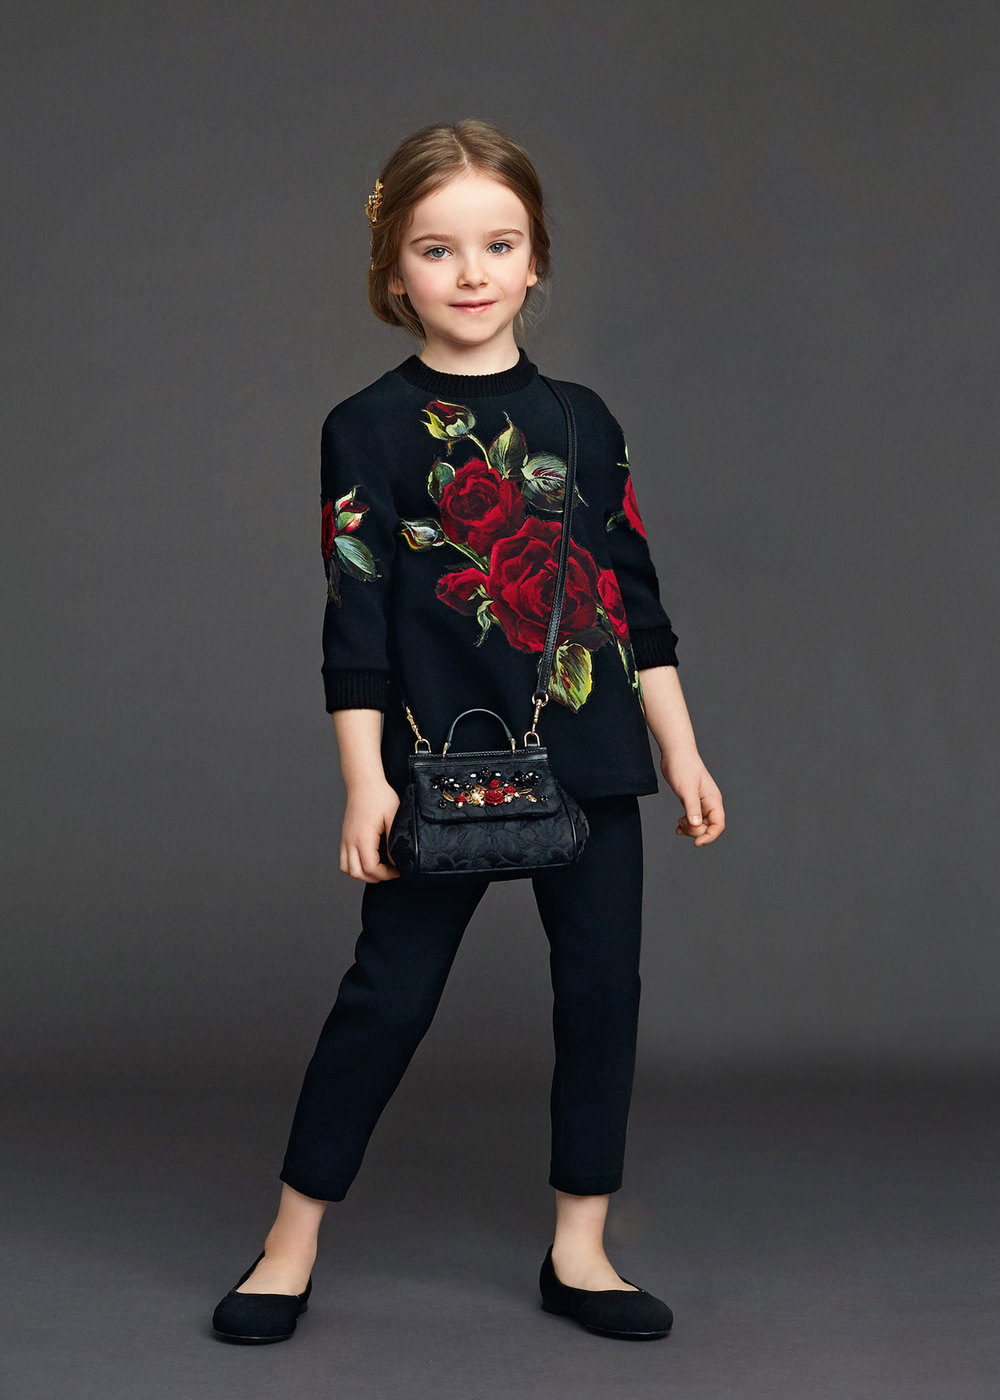 dolce-and-gabbana-winter-2016-child-collection-36-zoom.jpg